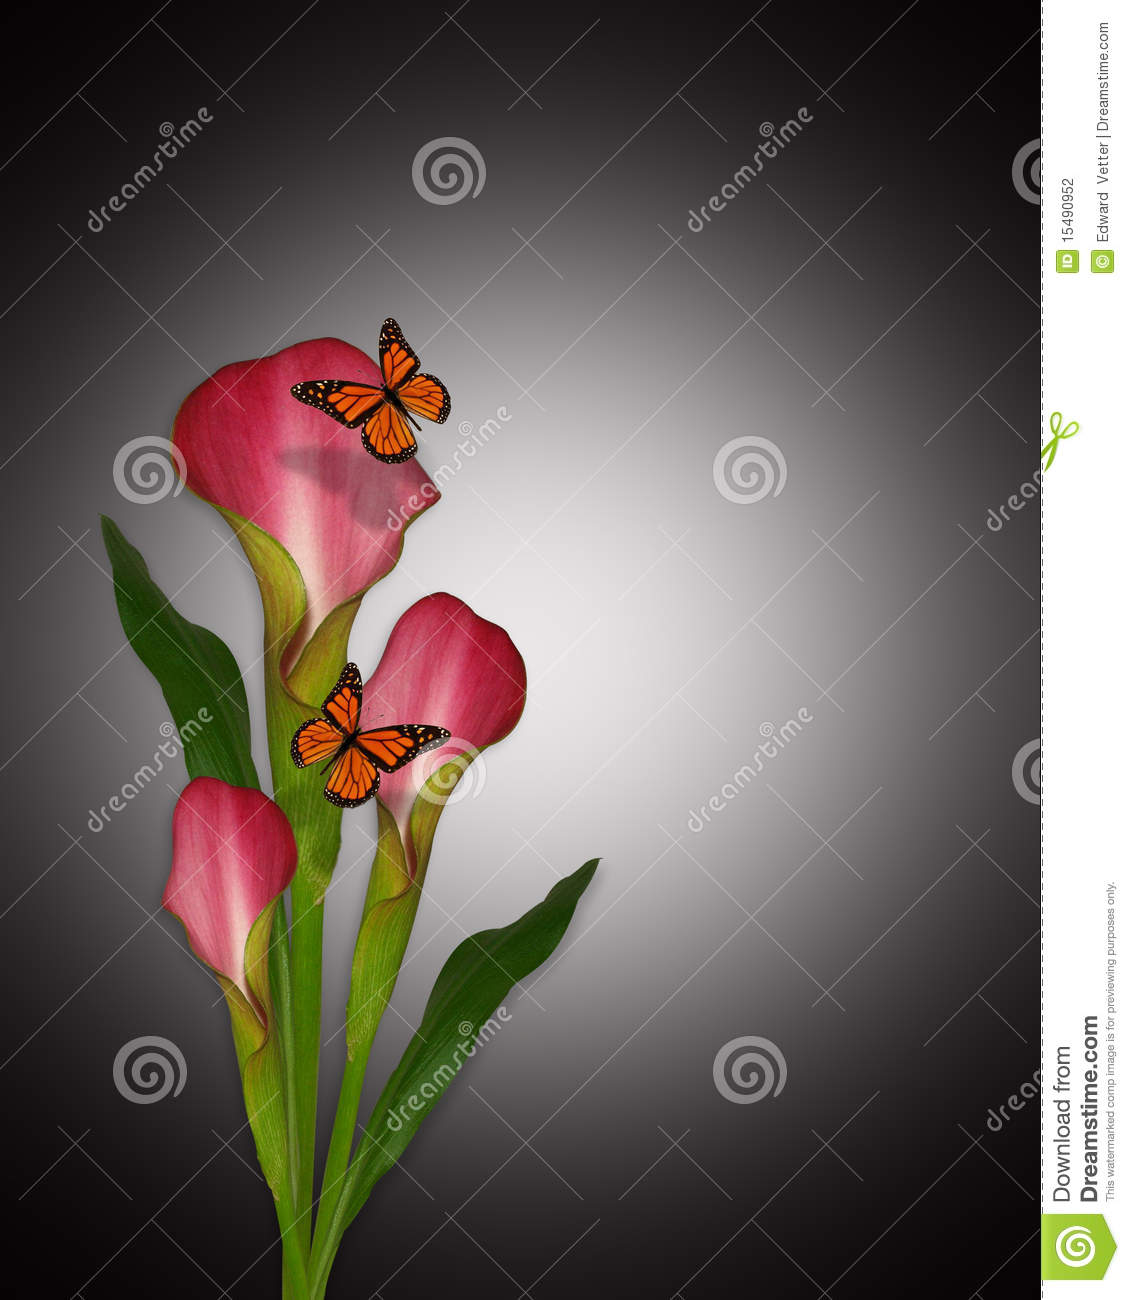 Calla Lily Flower Template Calla Lilies And Butterflies Stock Photography - Image